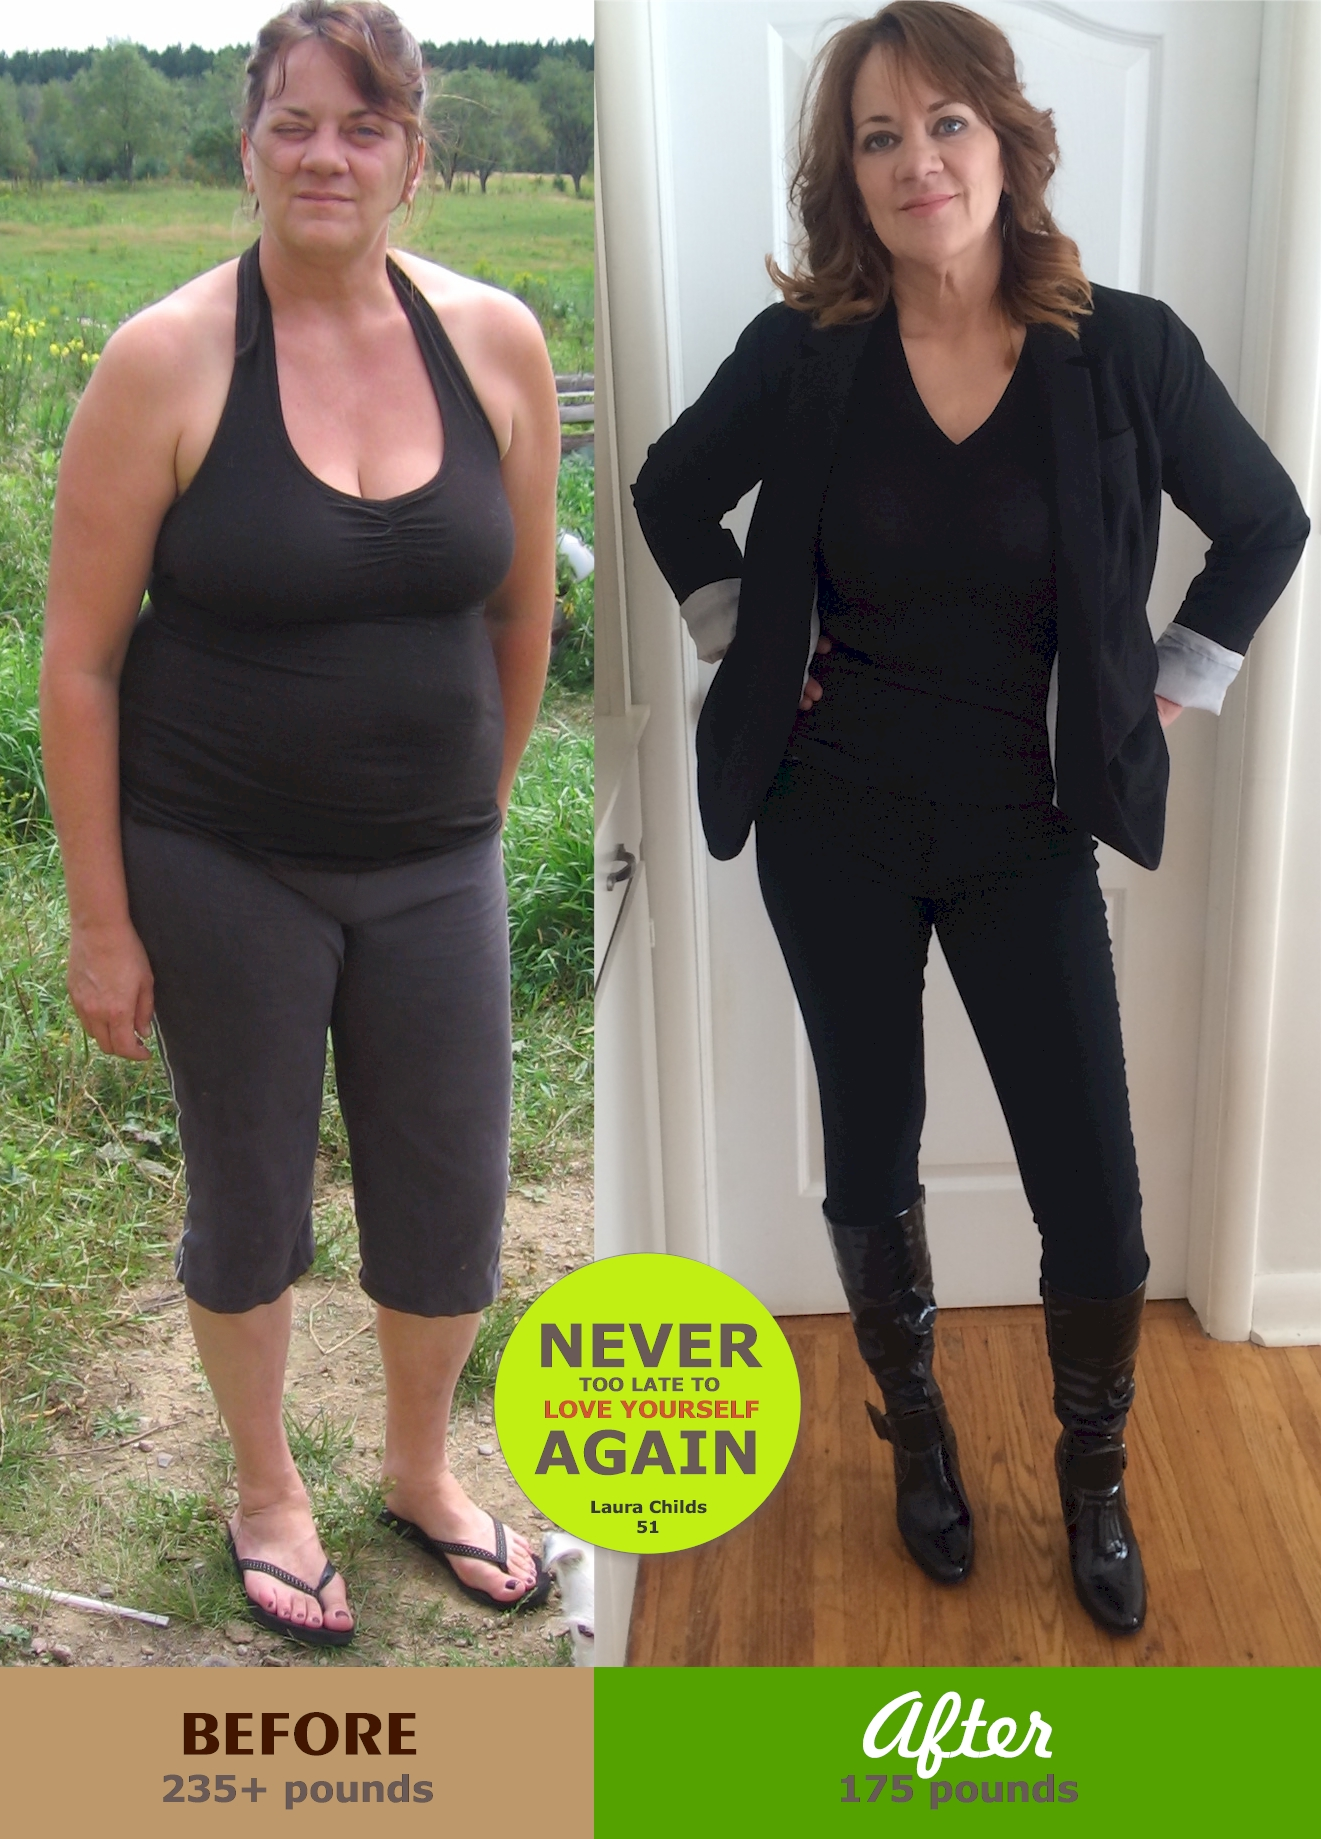 Dersim: Fast Weight Loss on a Low-Carb Ketogenic Diet - BEFORE Photos